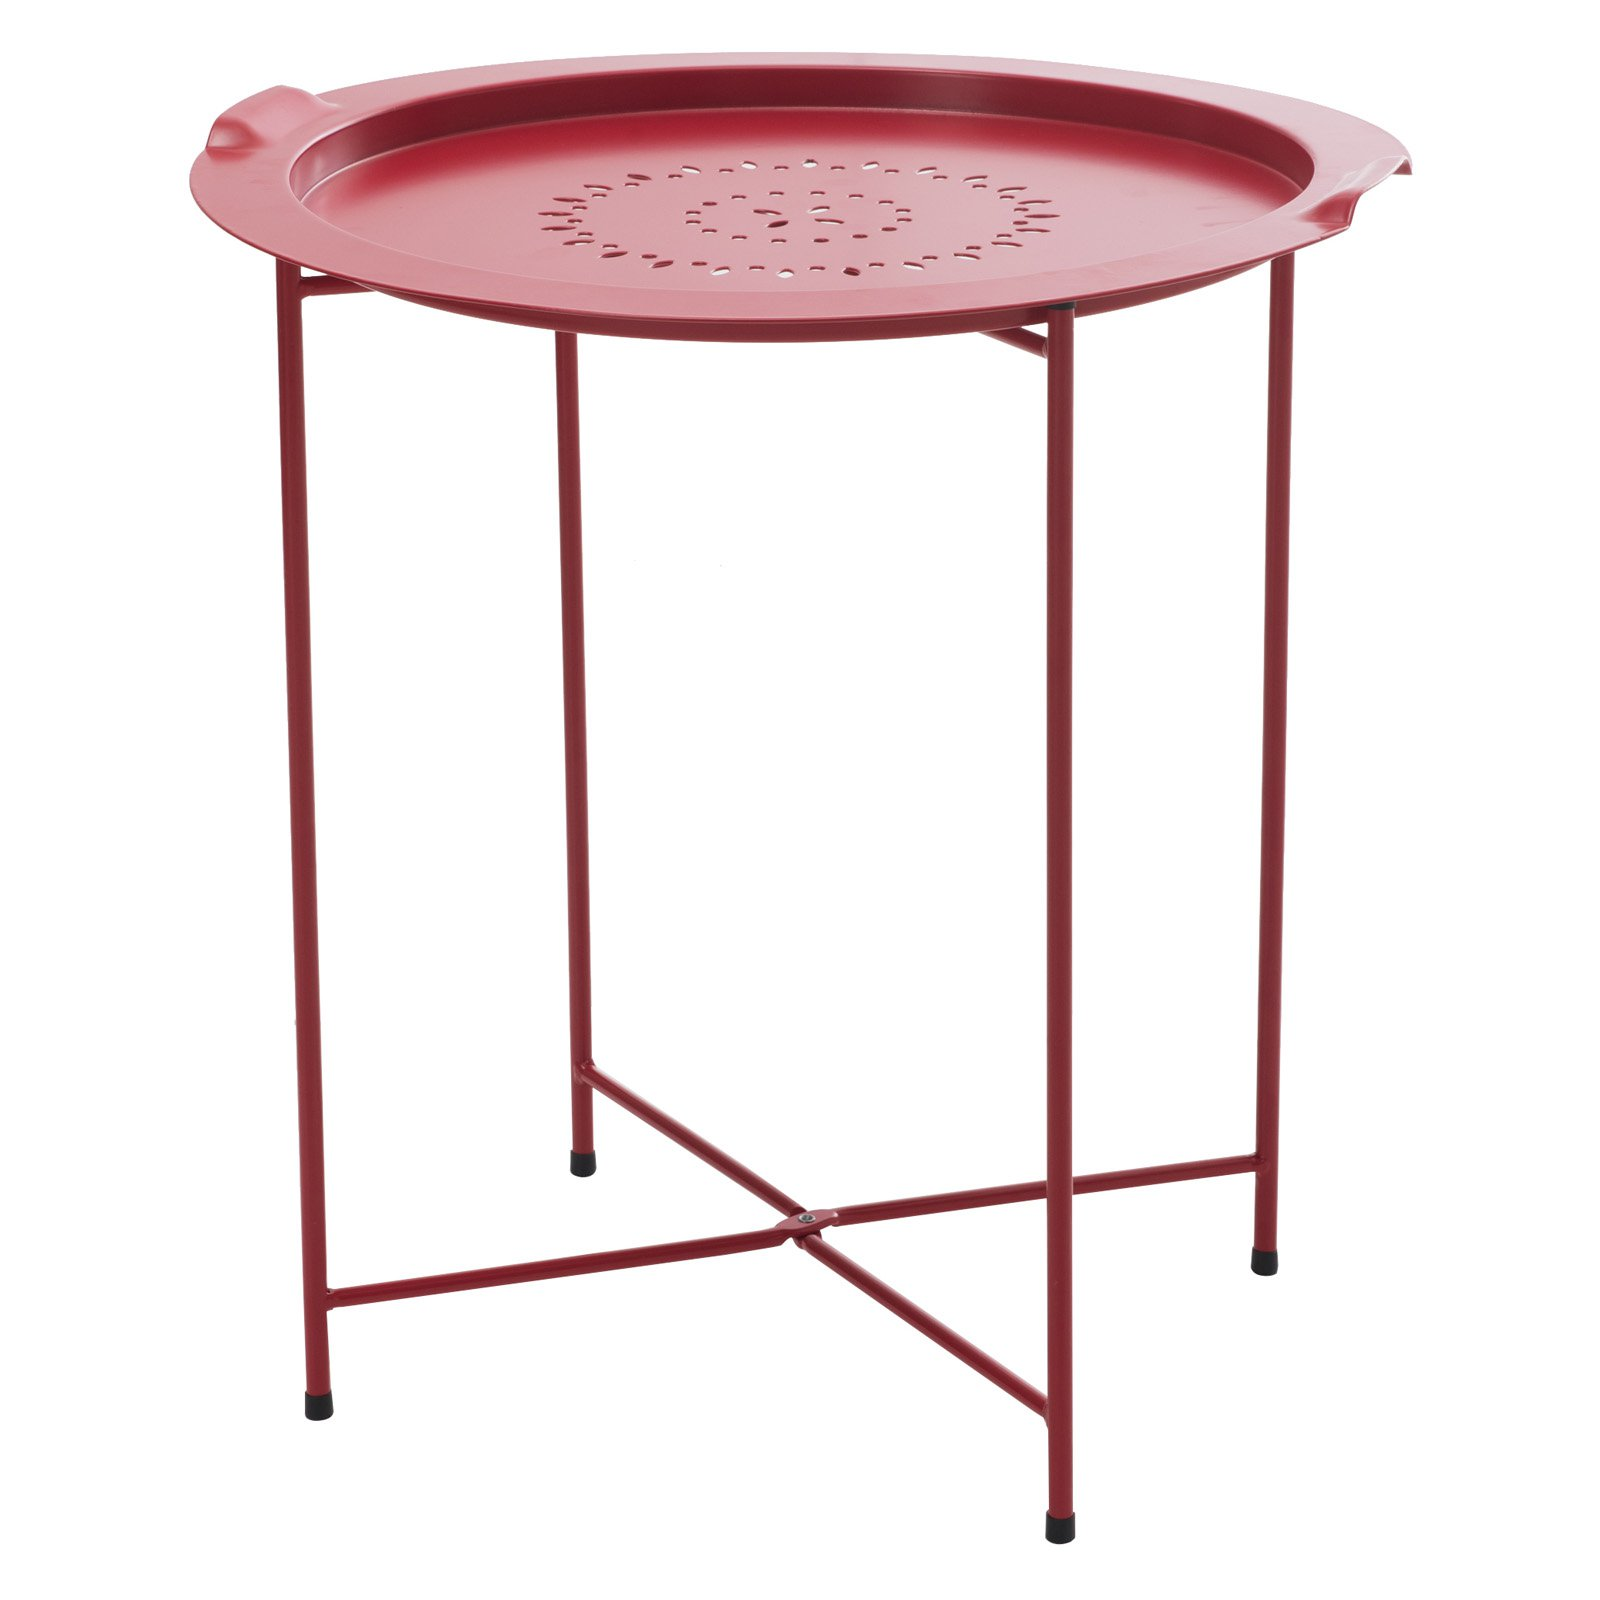 Sunjoy 110206035 Side Table with Removable Tray Red